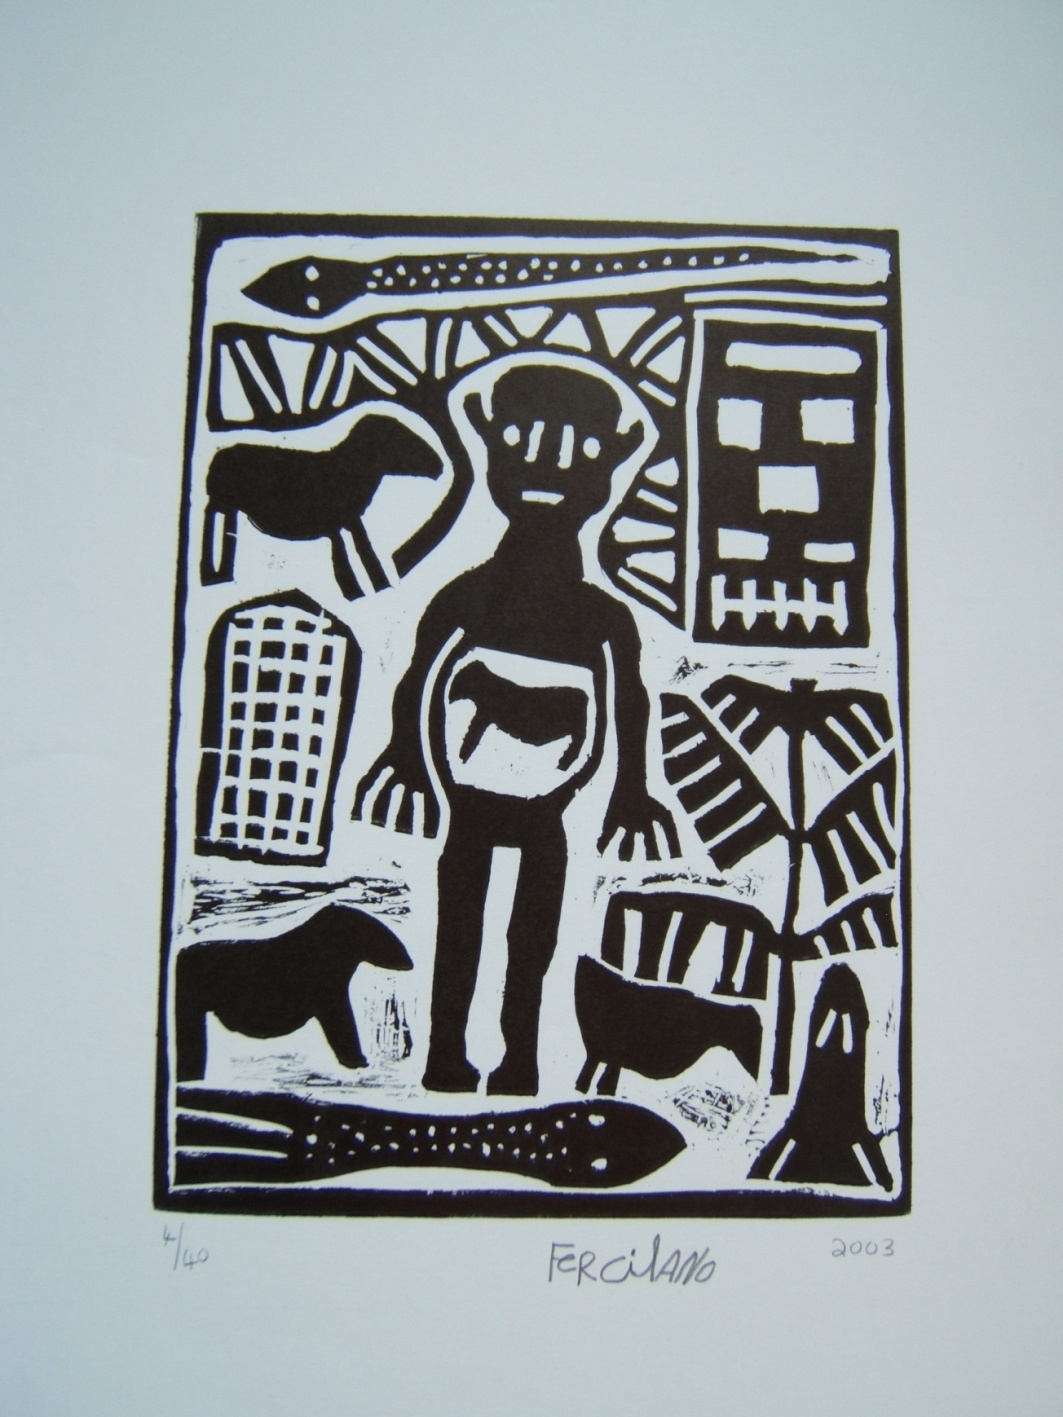 contemporary african art, lino cut, black and white, San art, South Africa, Freciano